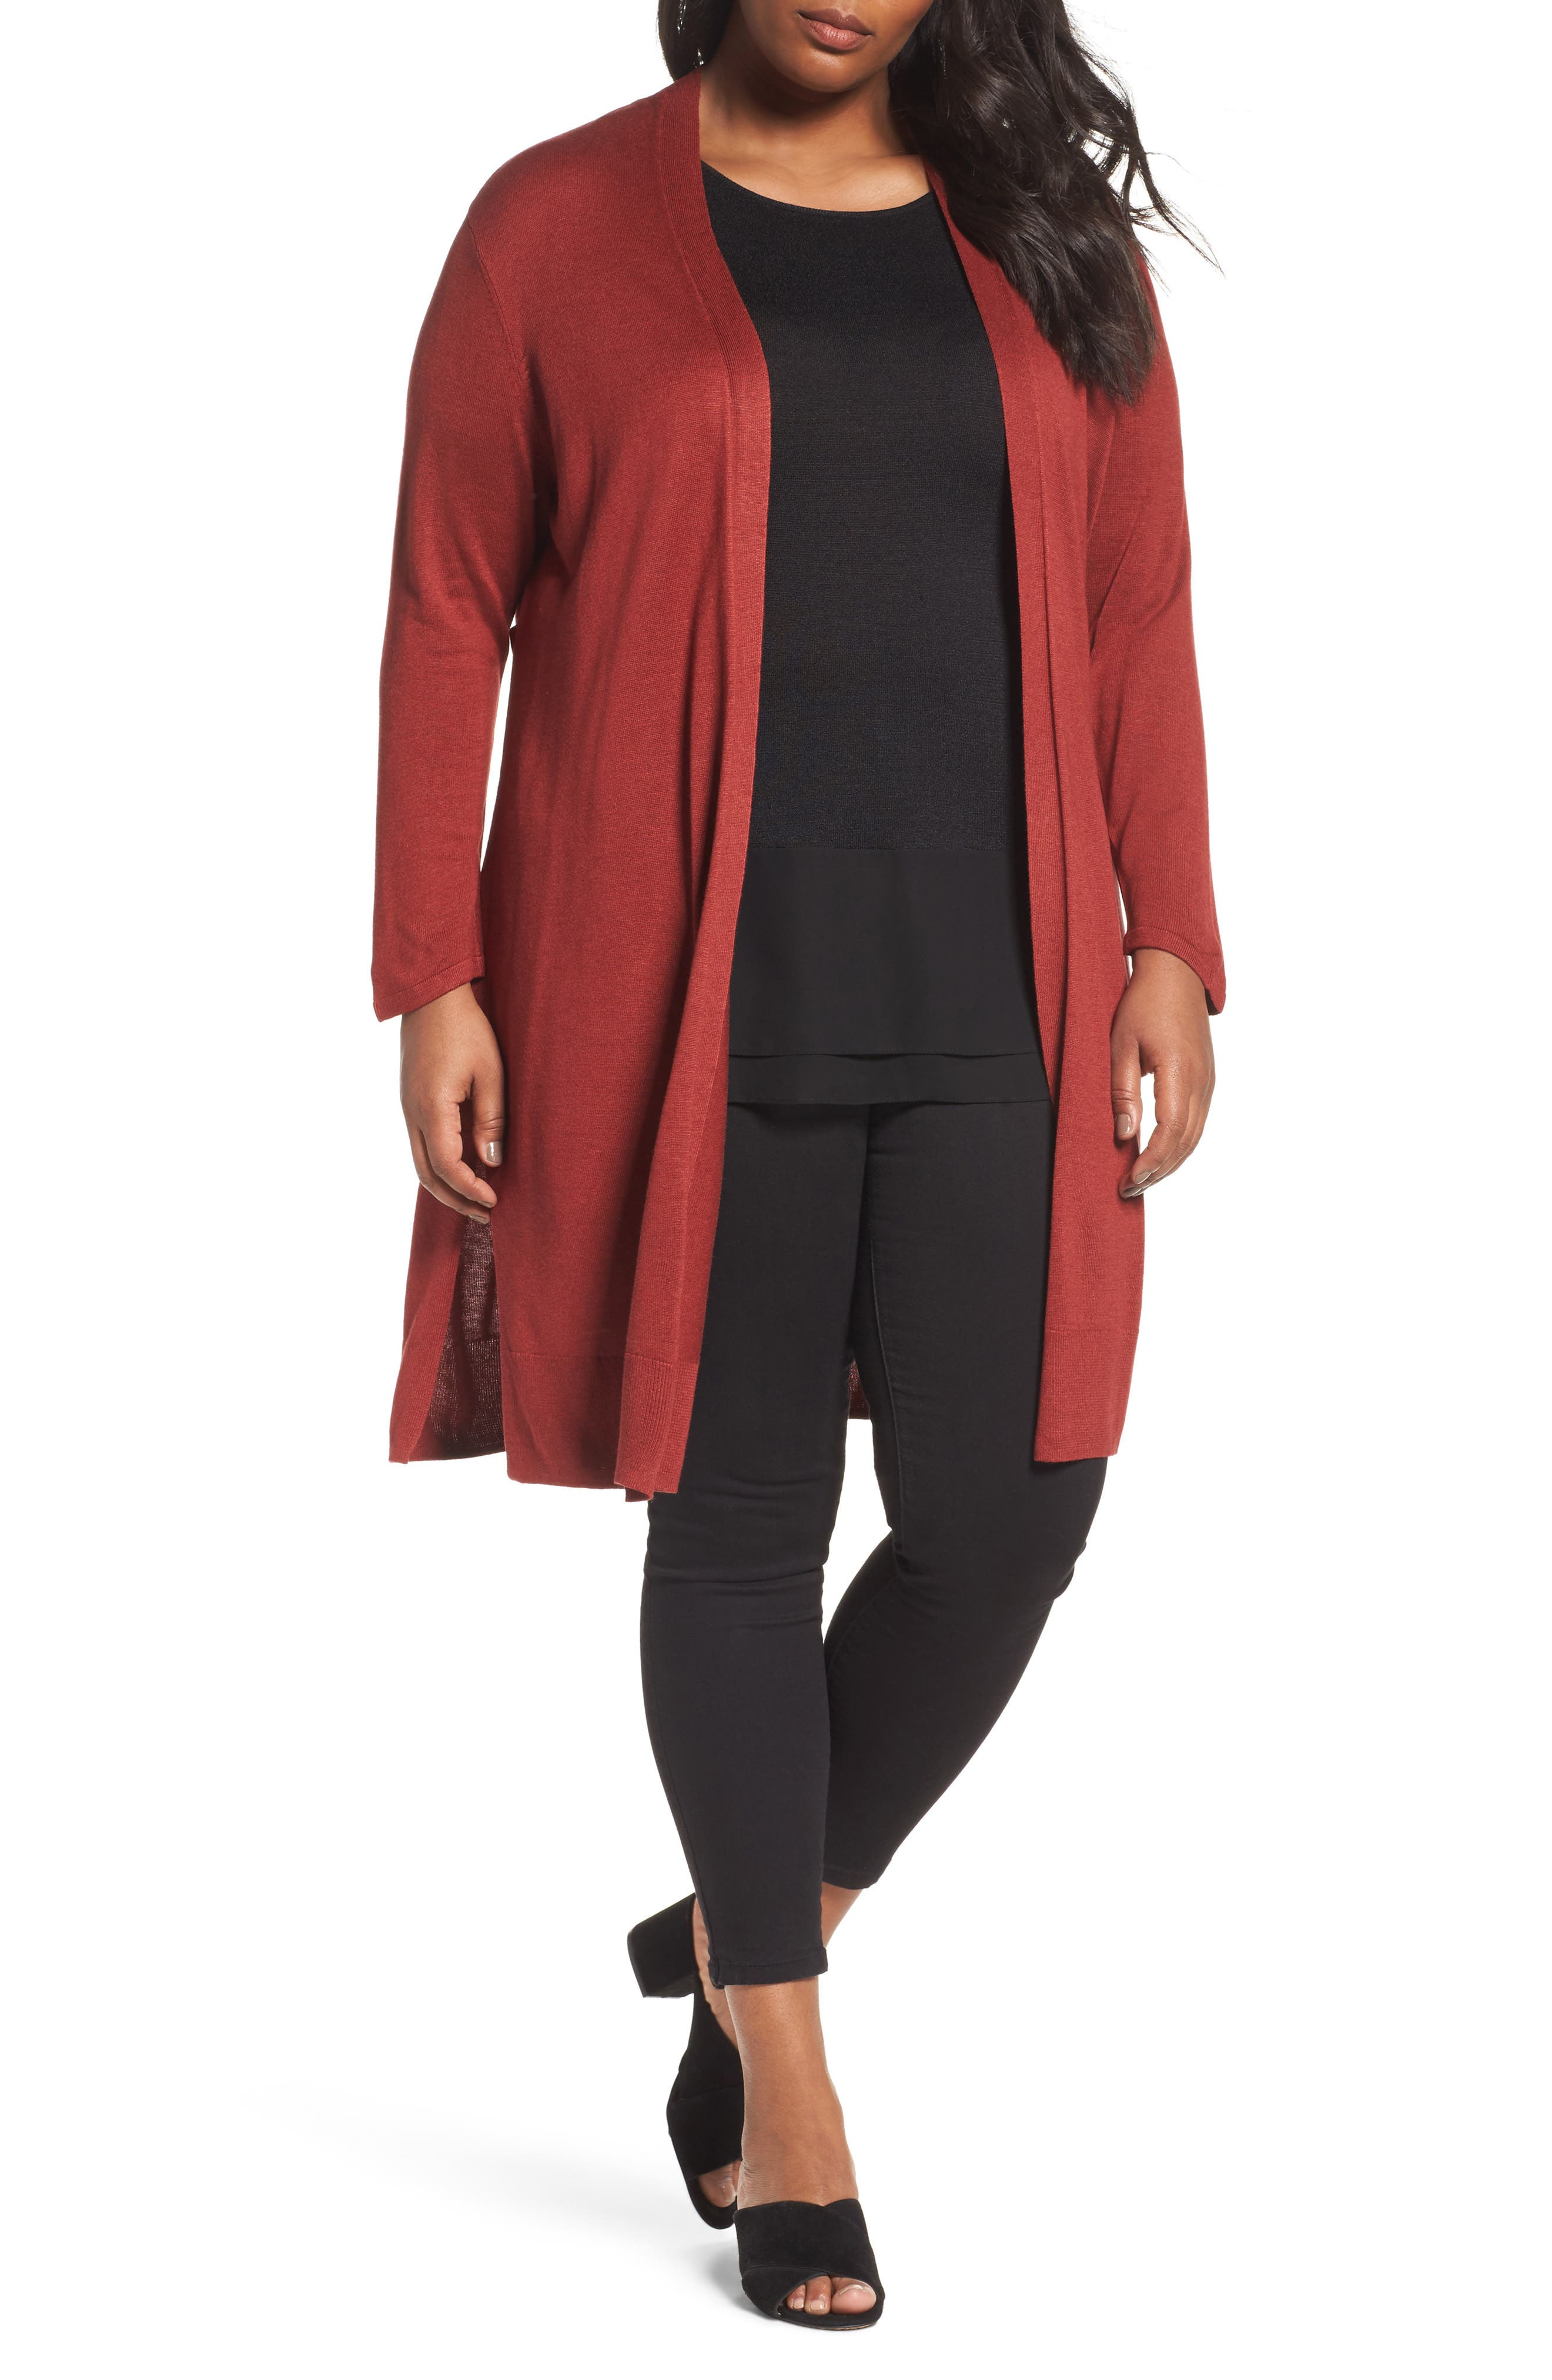 Alternate Image 1 Selected - NIC+ZOE Silk Blend Trench Cardigan (Plus Size)